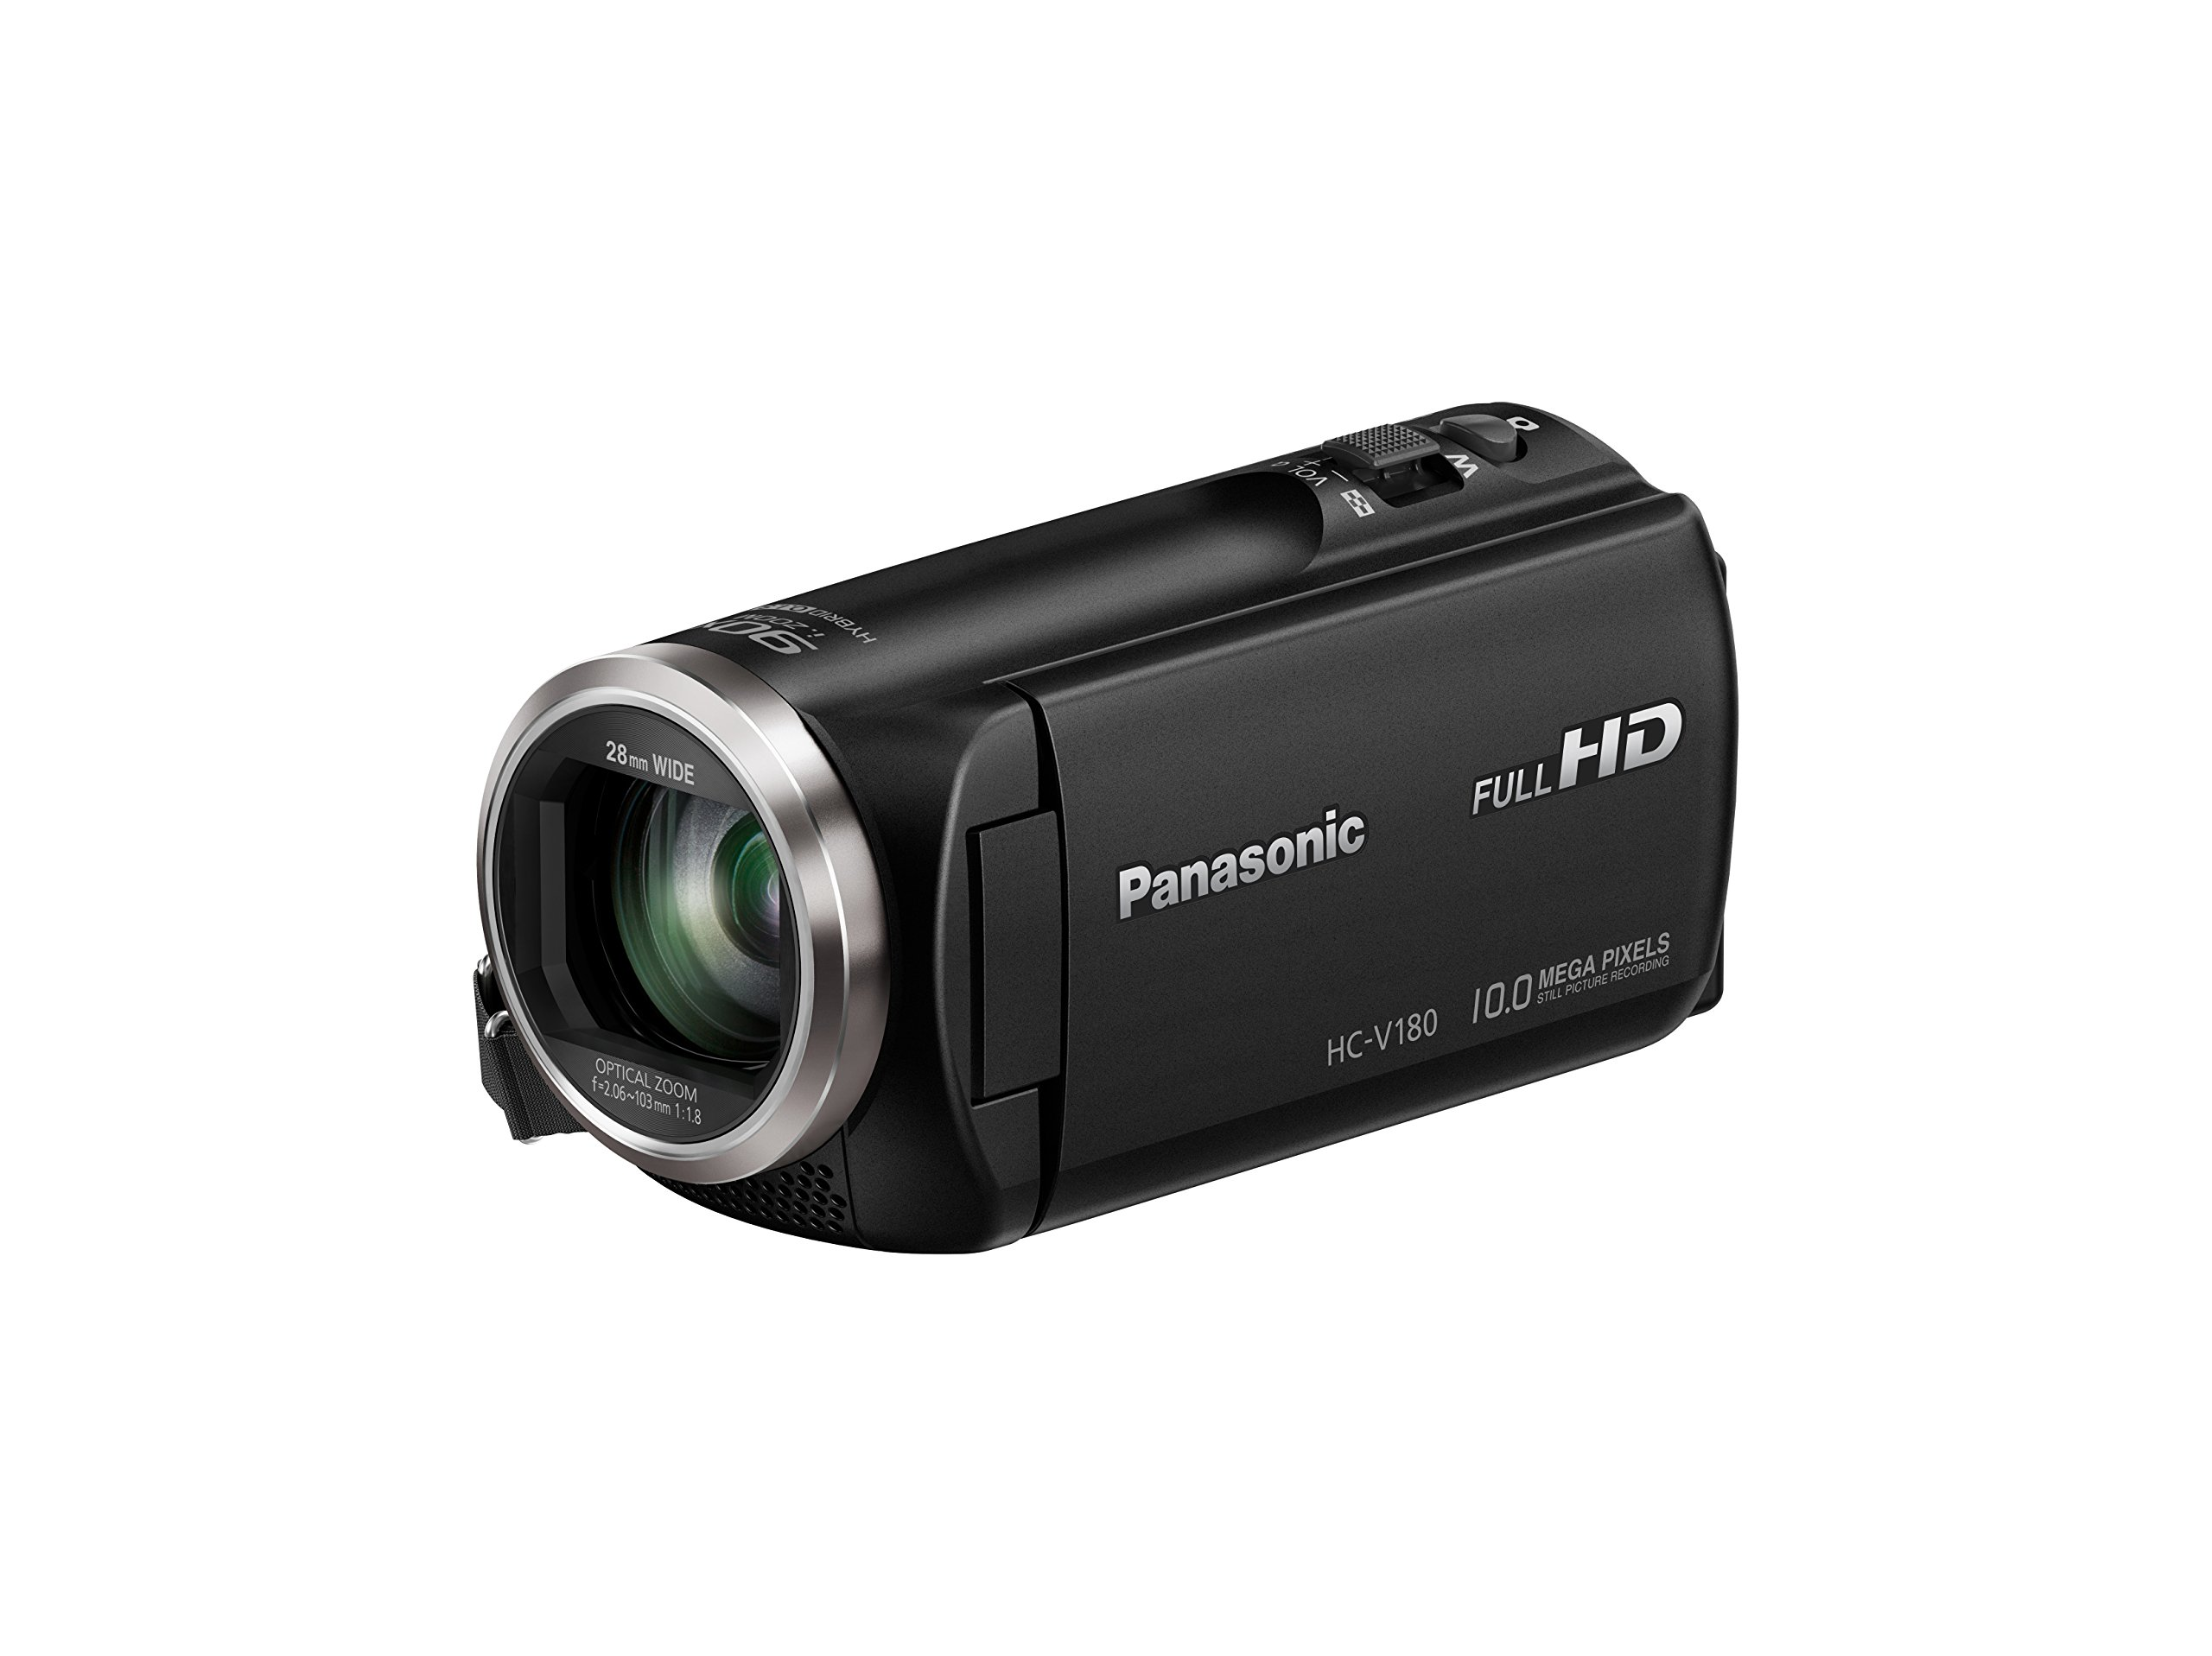 Panasonic Full HD Video Camera Camcorder HC-V180K, 50X Optical Zoom, 1/5.8-Inch BSI Sensor, Touch Enabled 2.7-Inch LCD Display (Black) by Panasonic